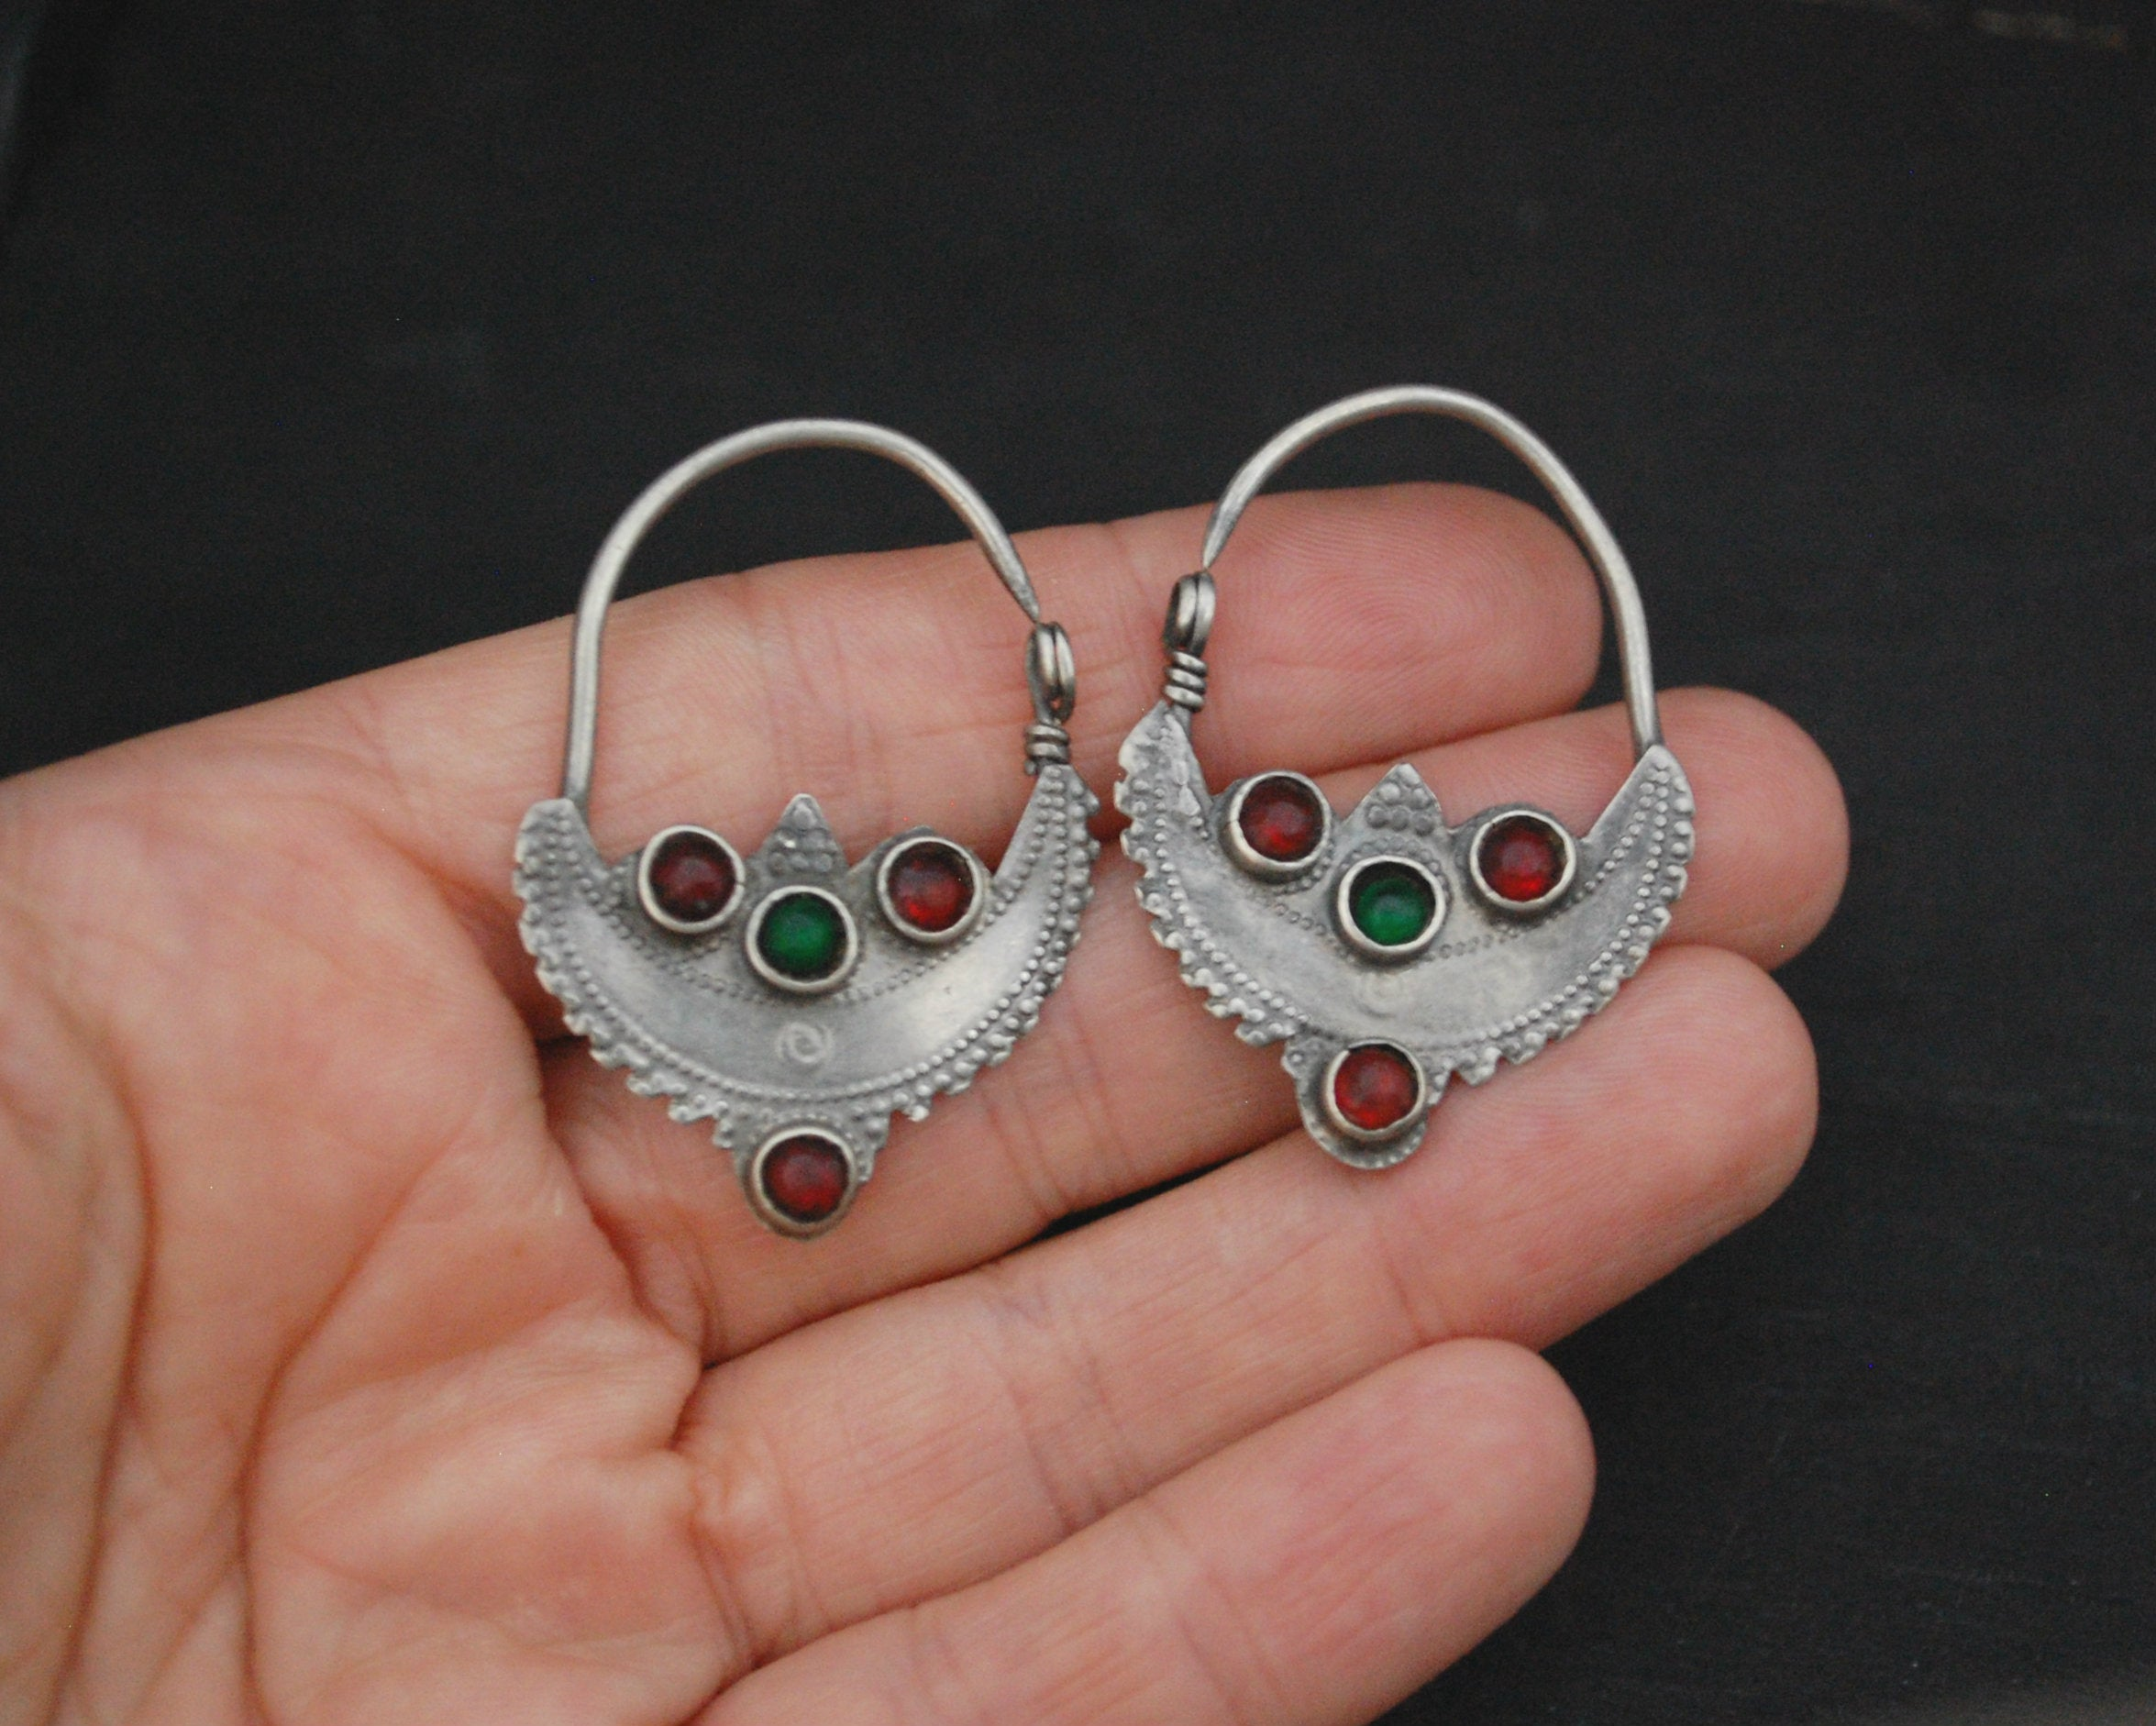 Antique Afghani Hoop Earrings with Glass